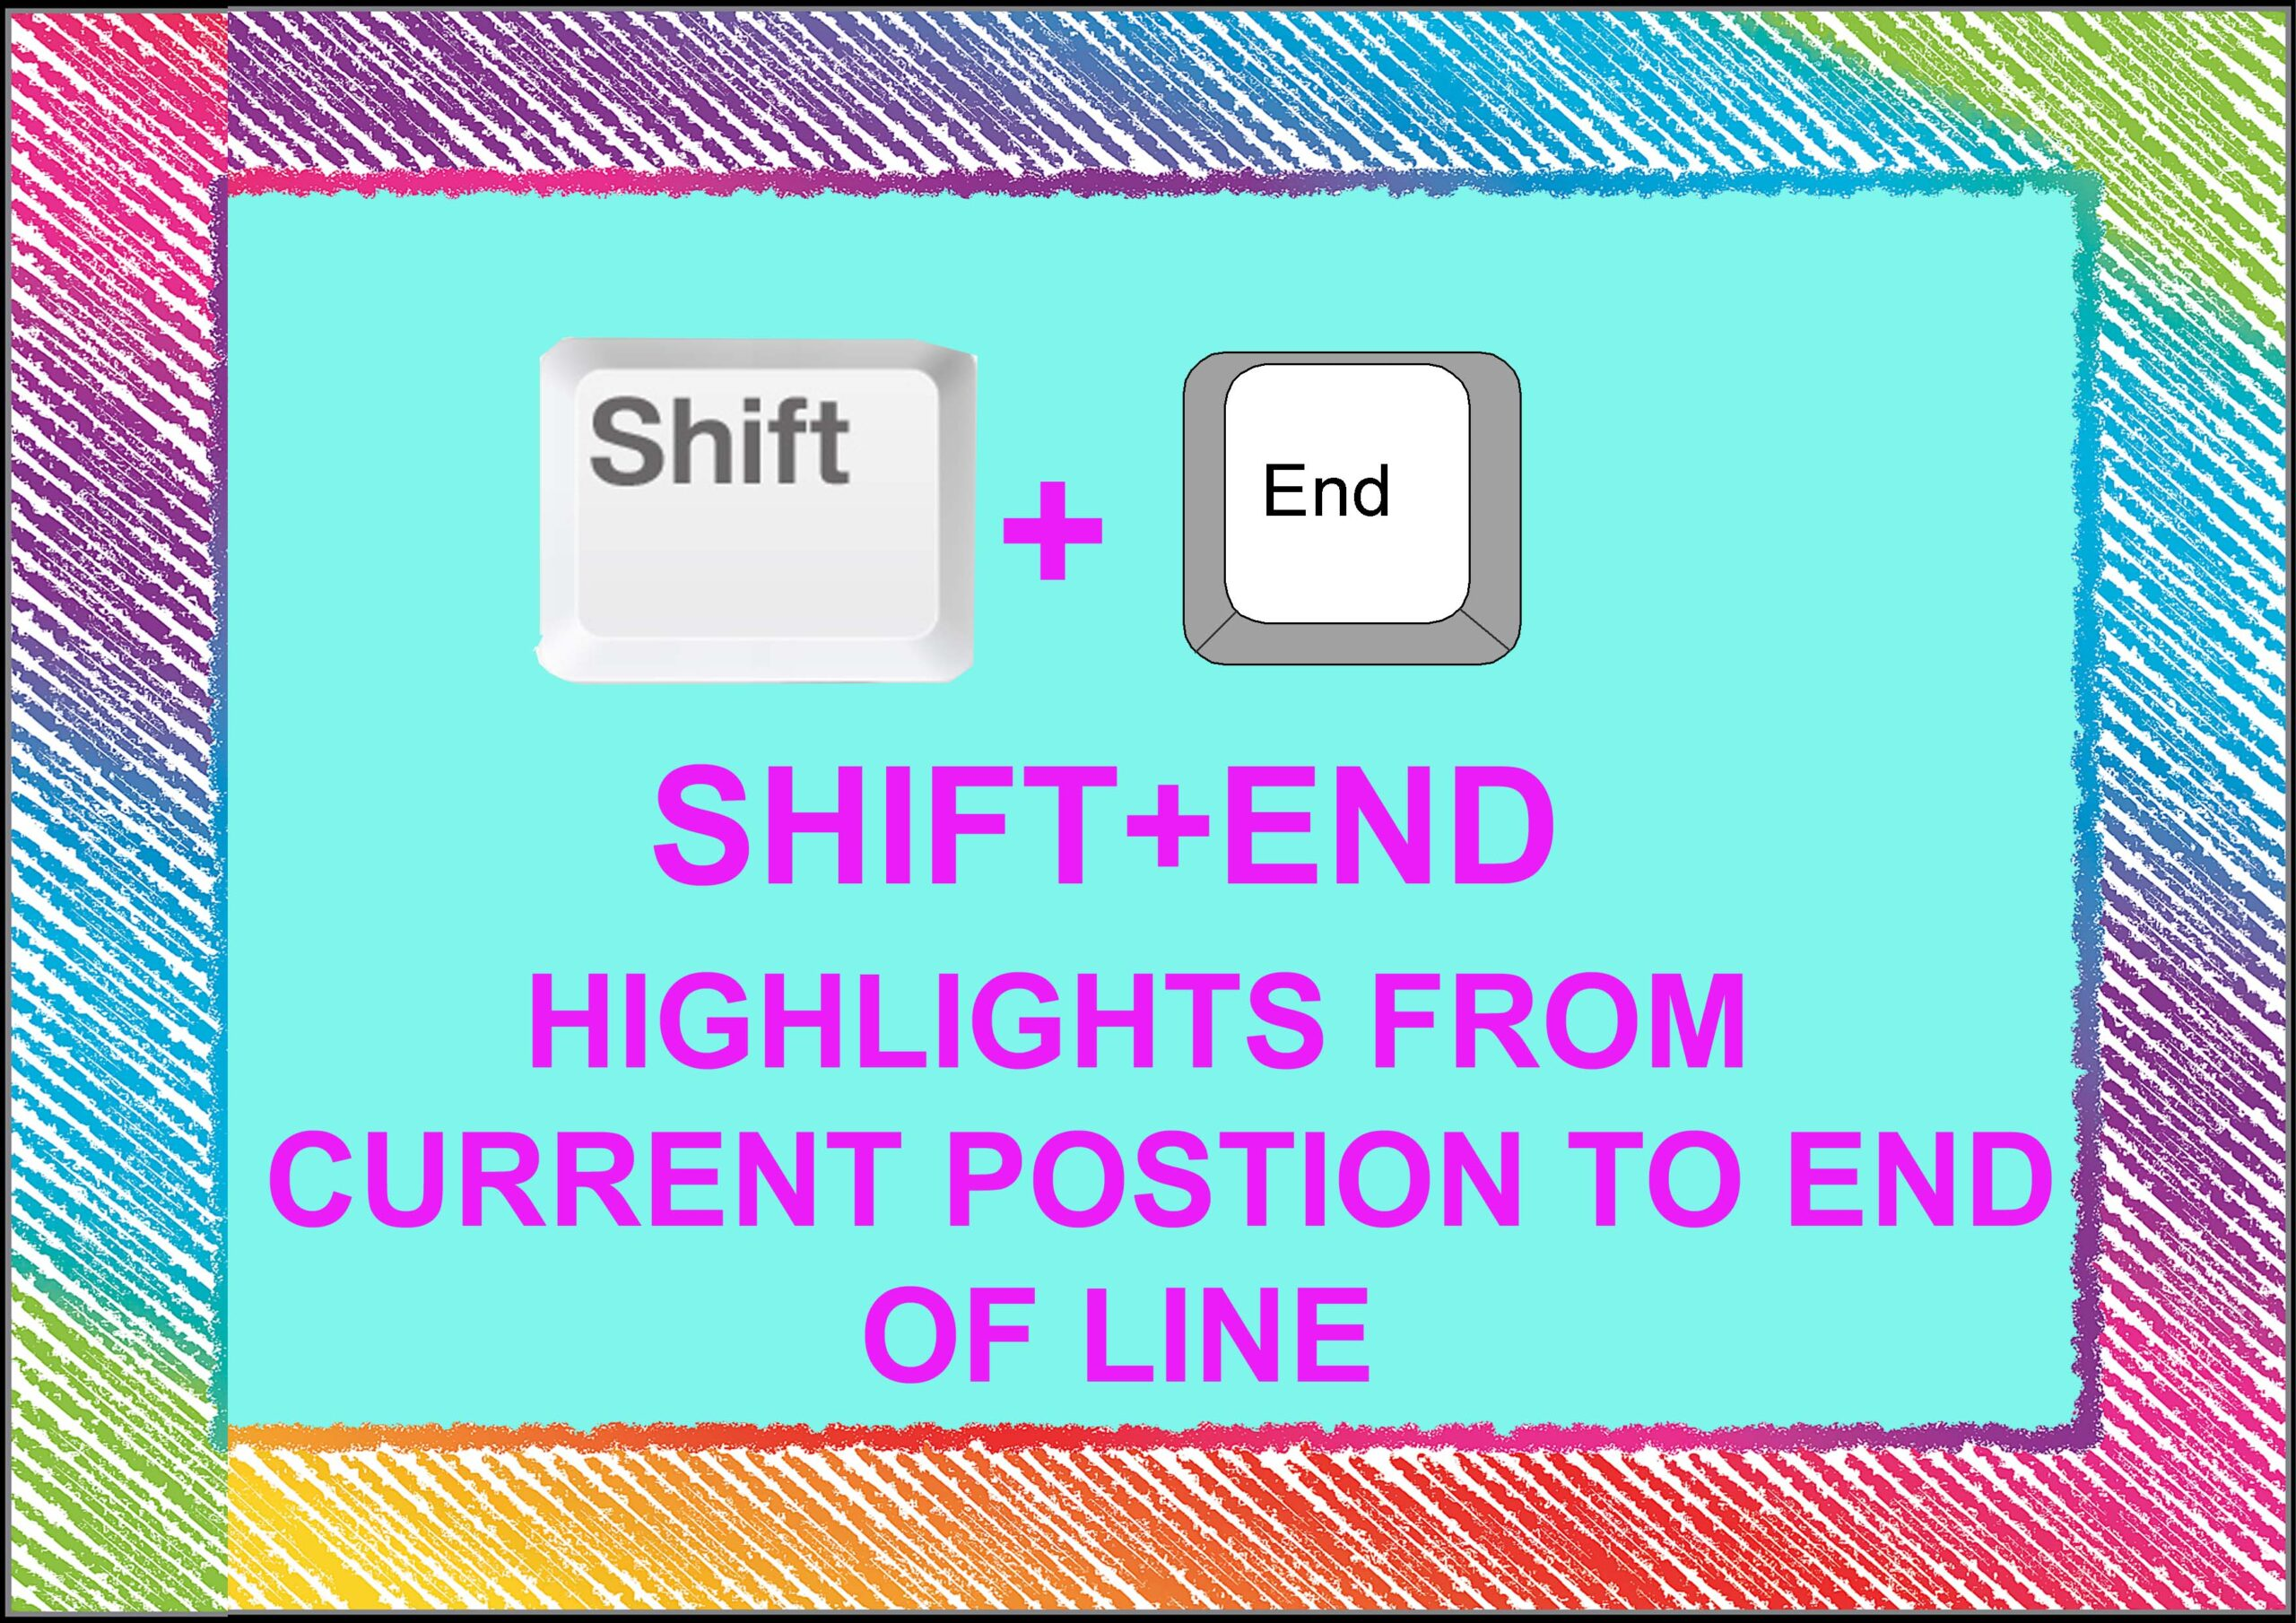 Shift+ End= Highlight From Current Position to End of Line